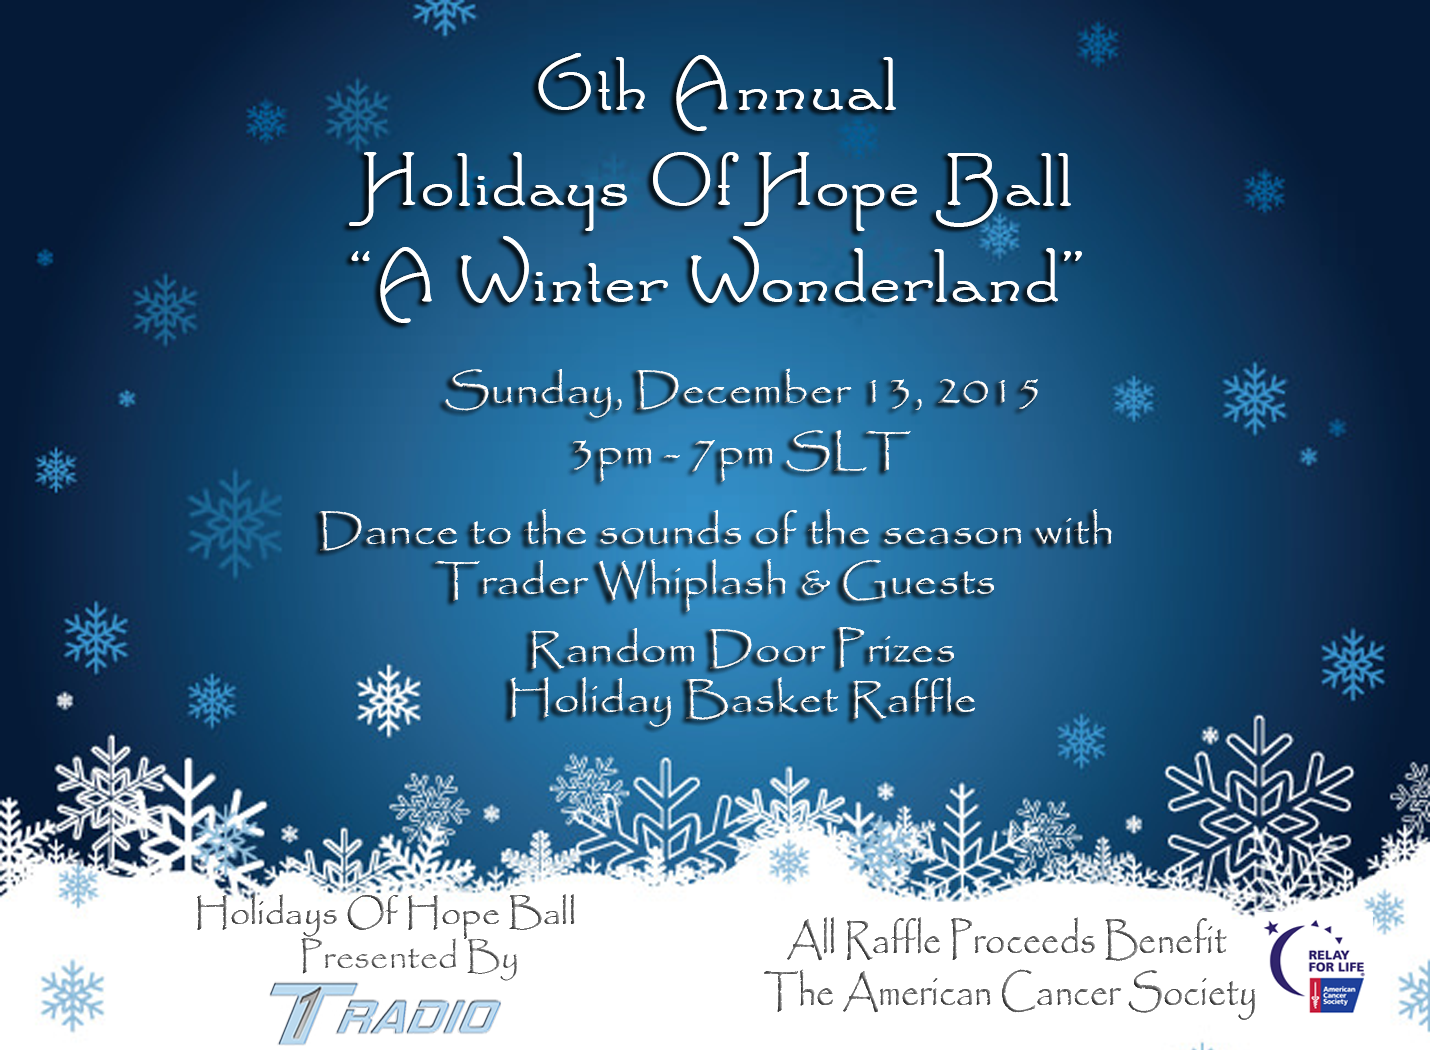 A Winter Wonderland – the 2015 Holidays of hope ball 6th Annual Gala ...